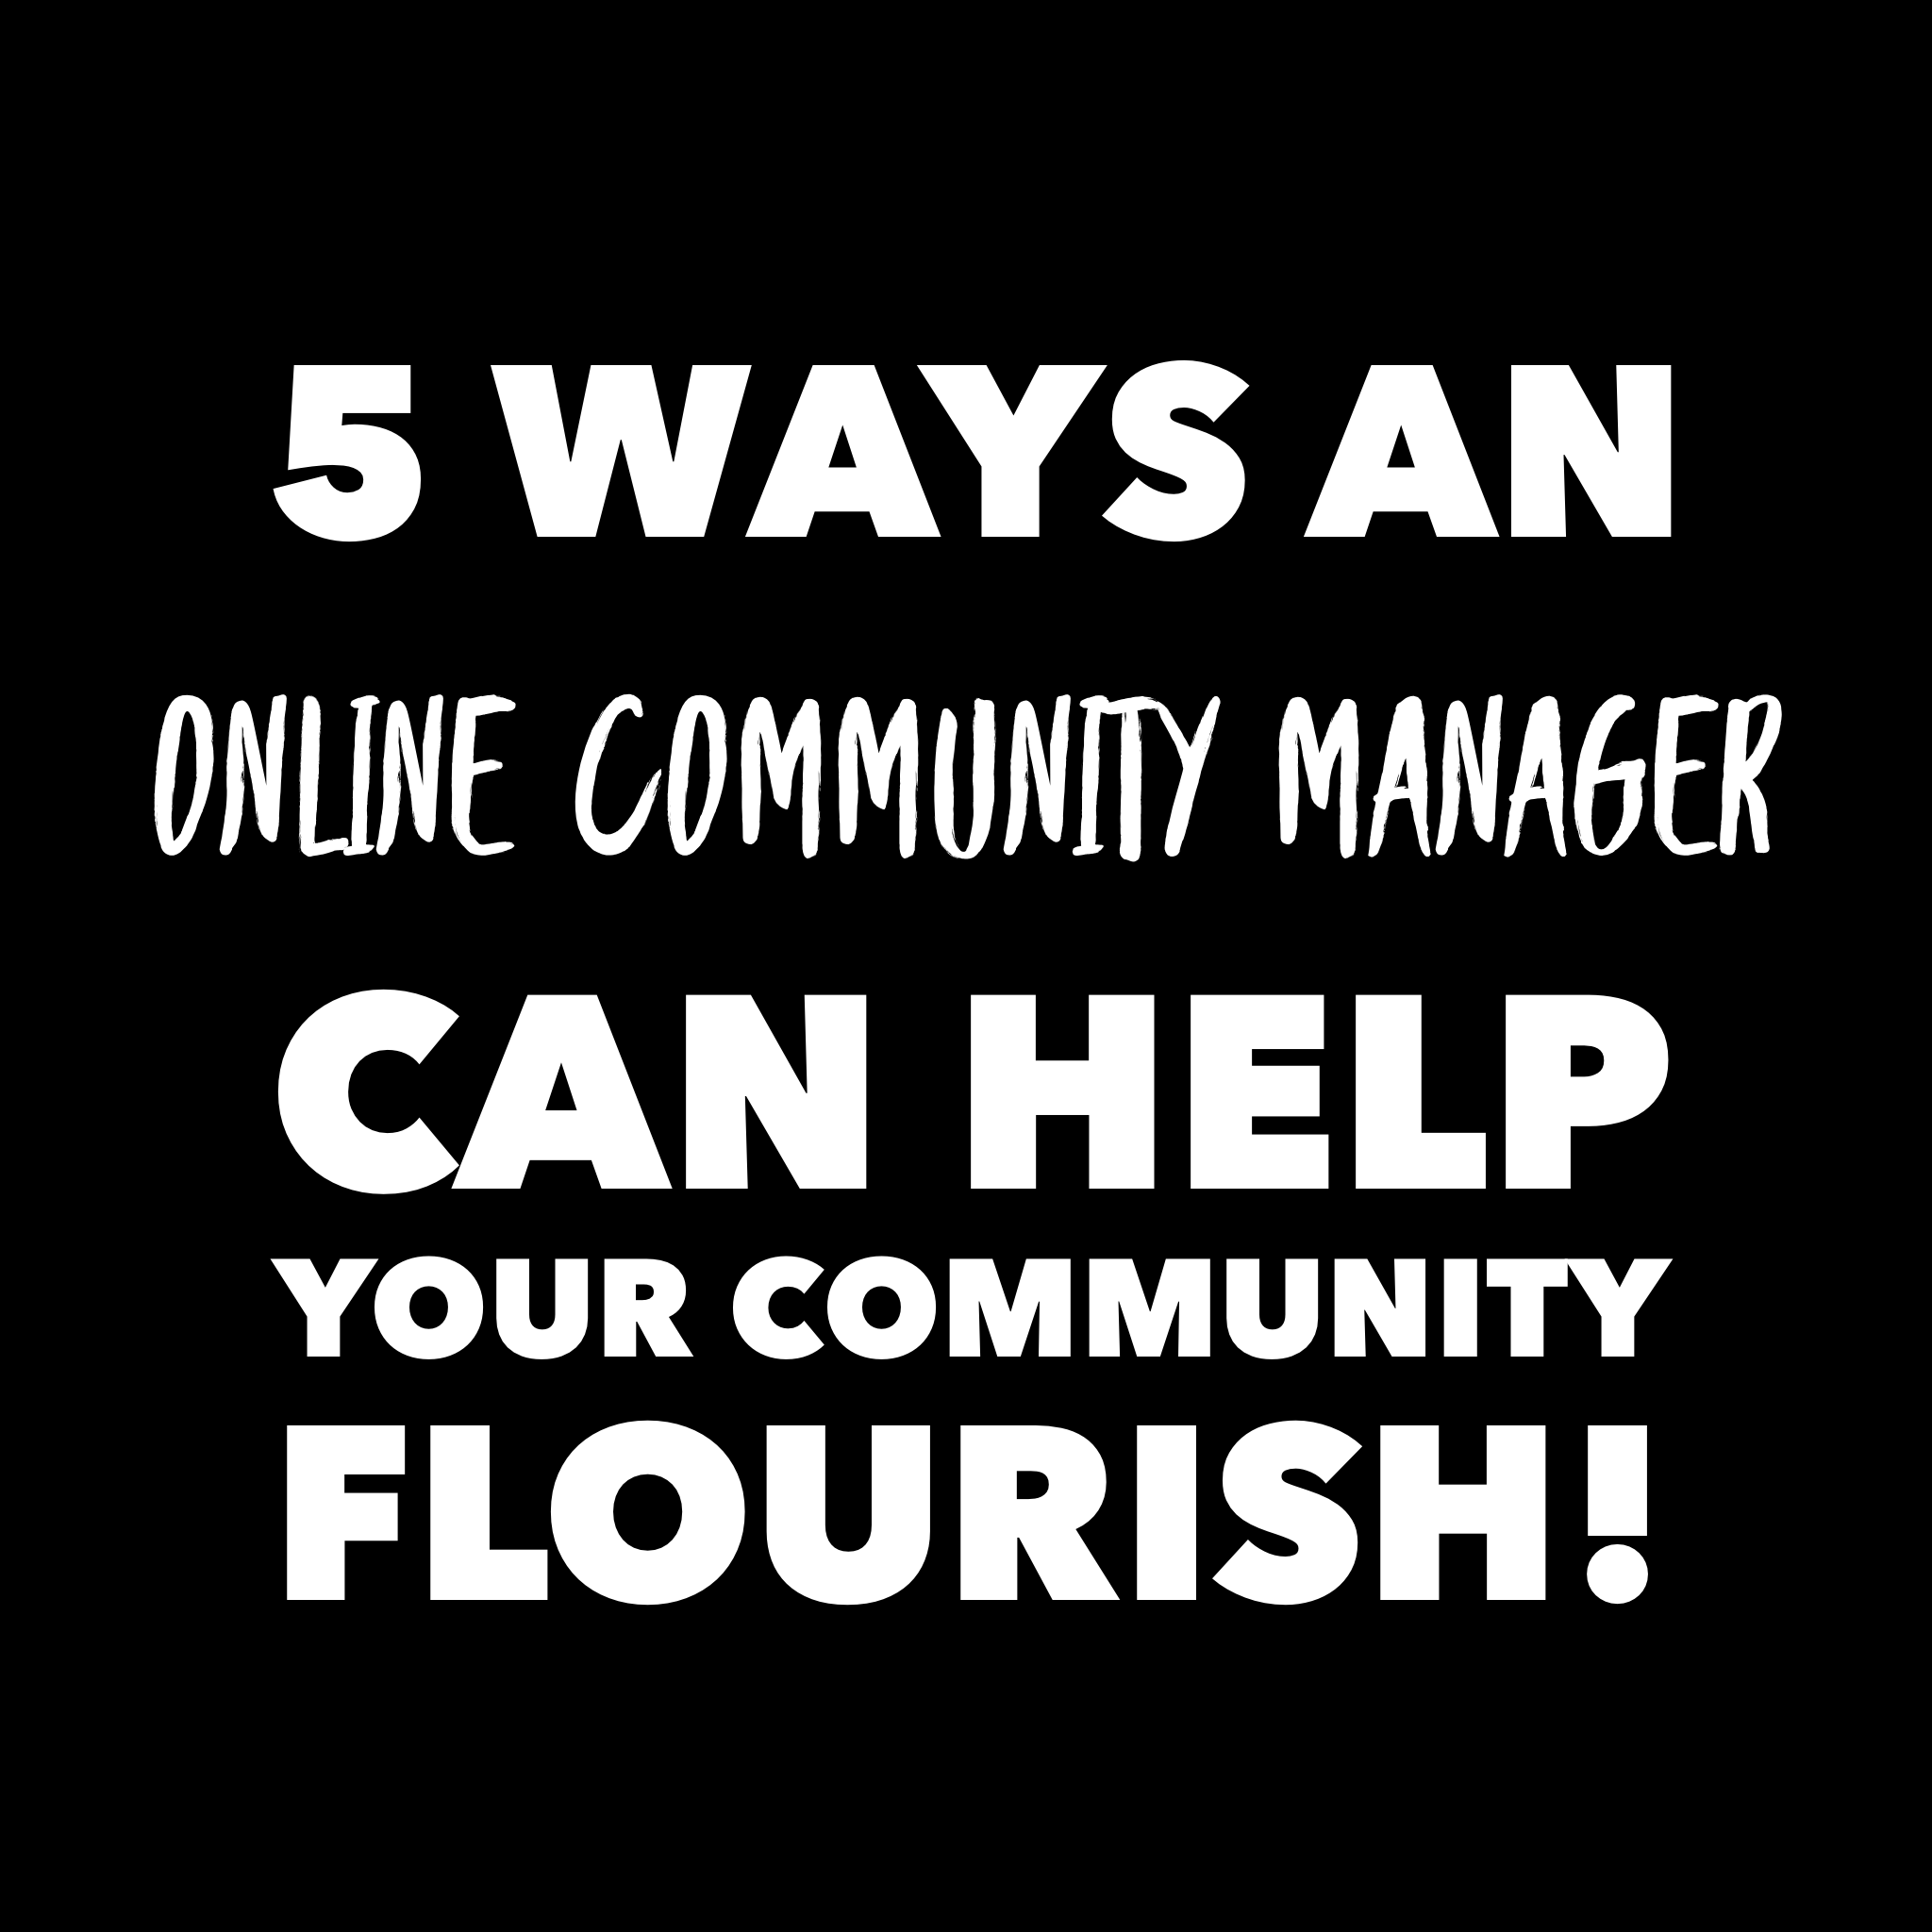 5 Ways an Online Community Manager Can Help Your Community Flourish